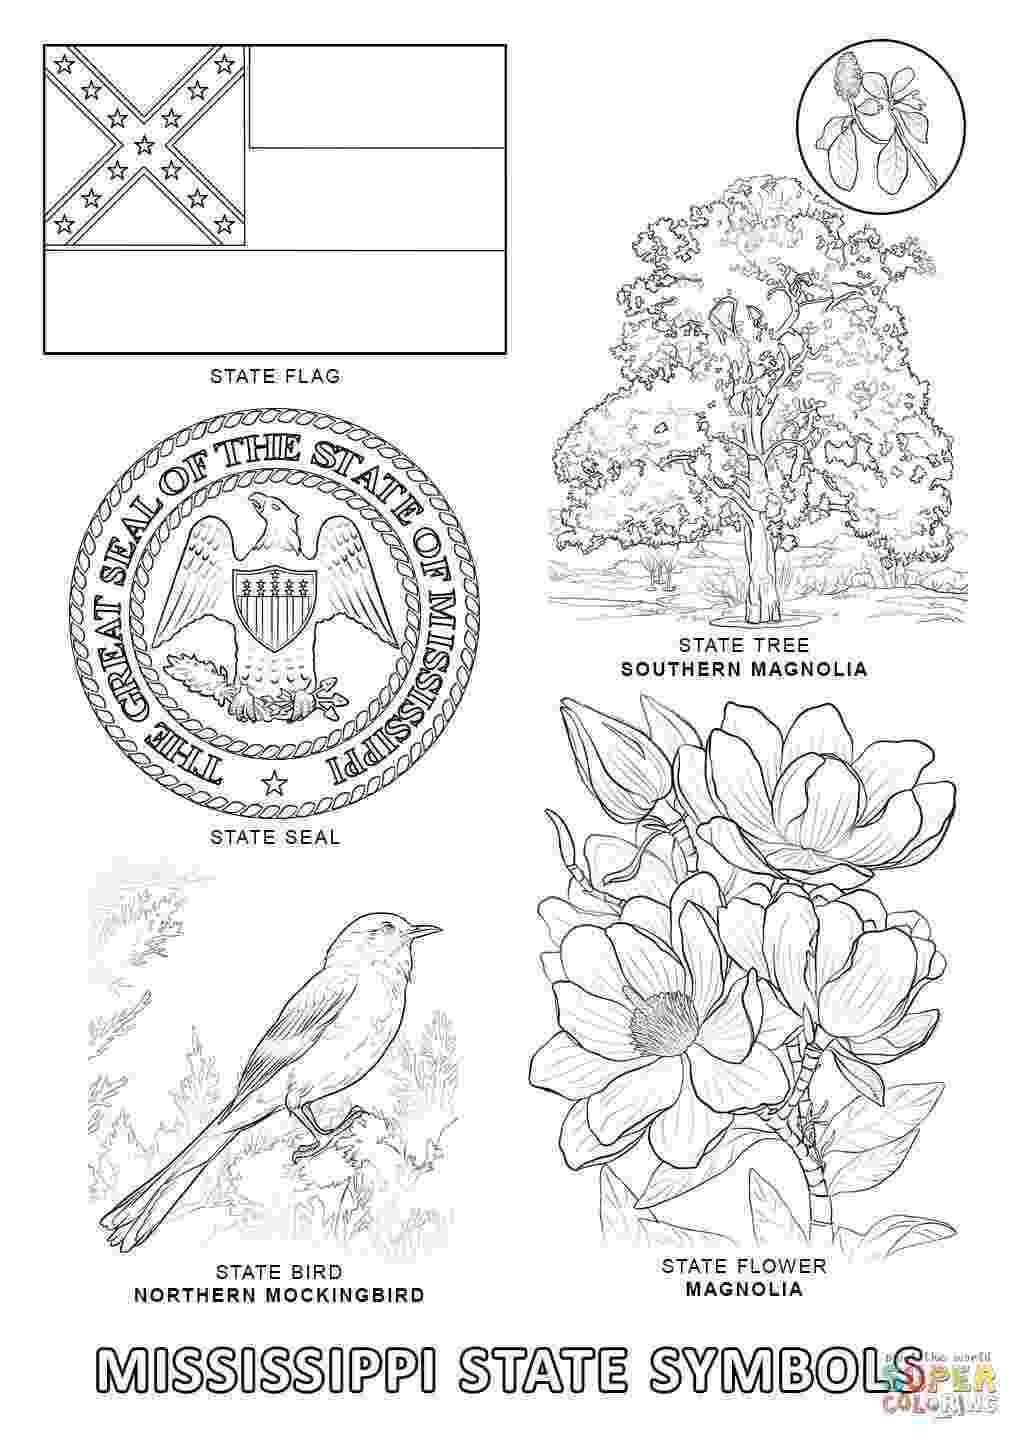 mississippi state flower mississippi state seal coloring page free printable mississippi flower state